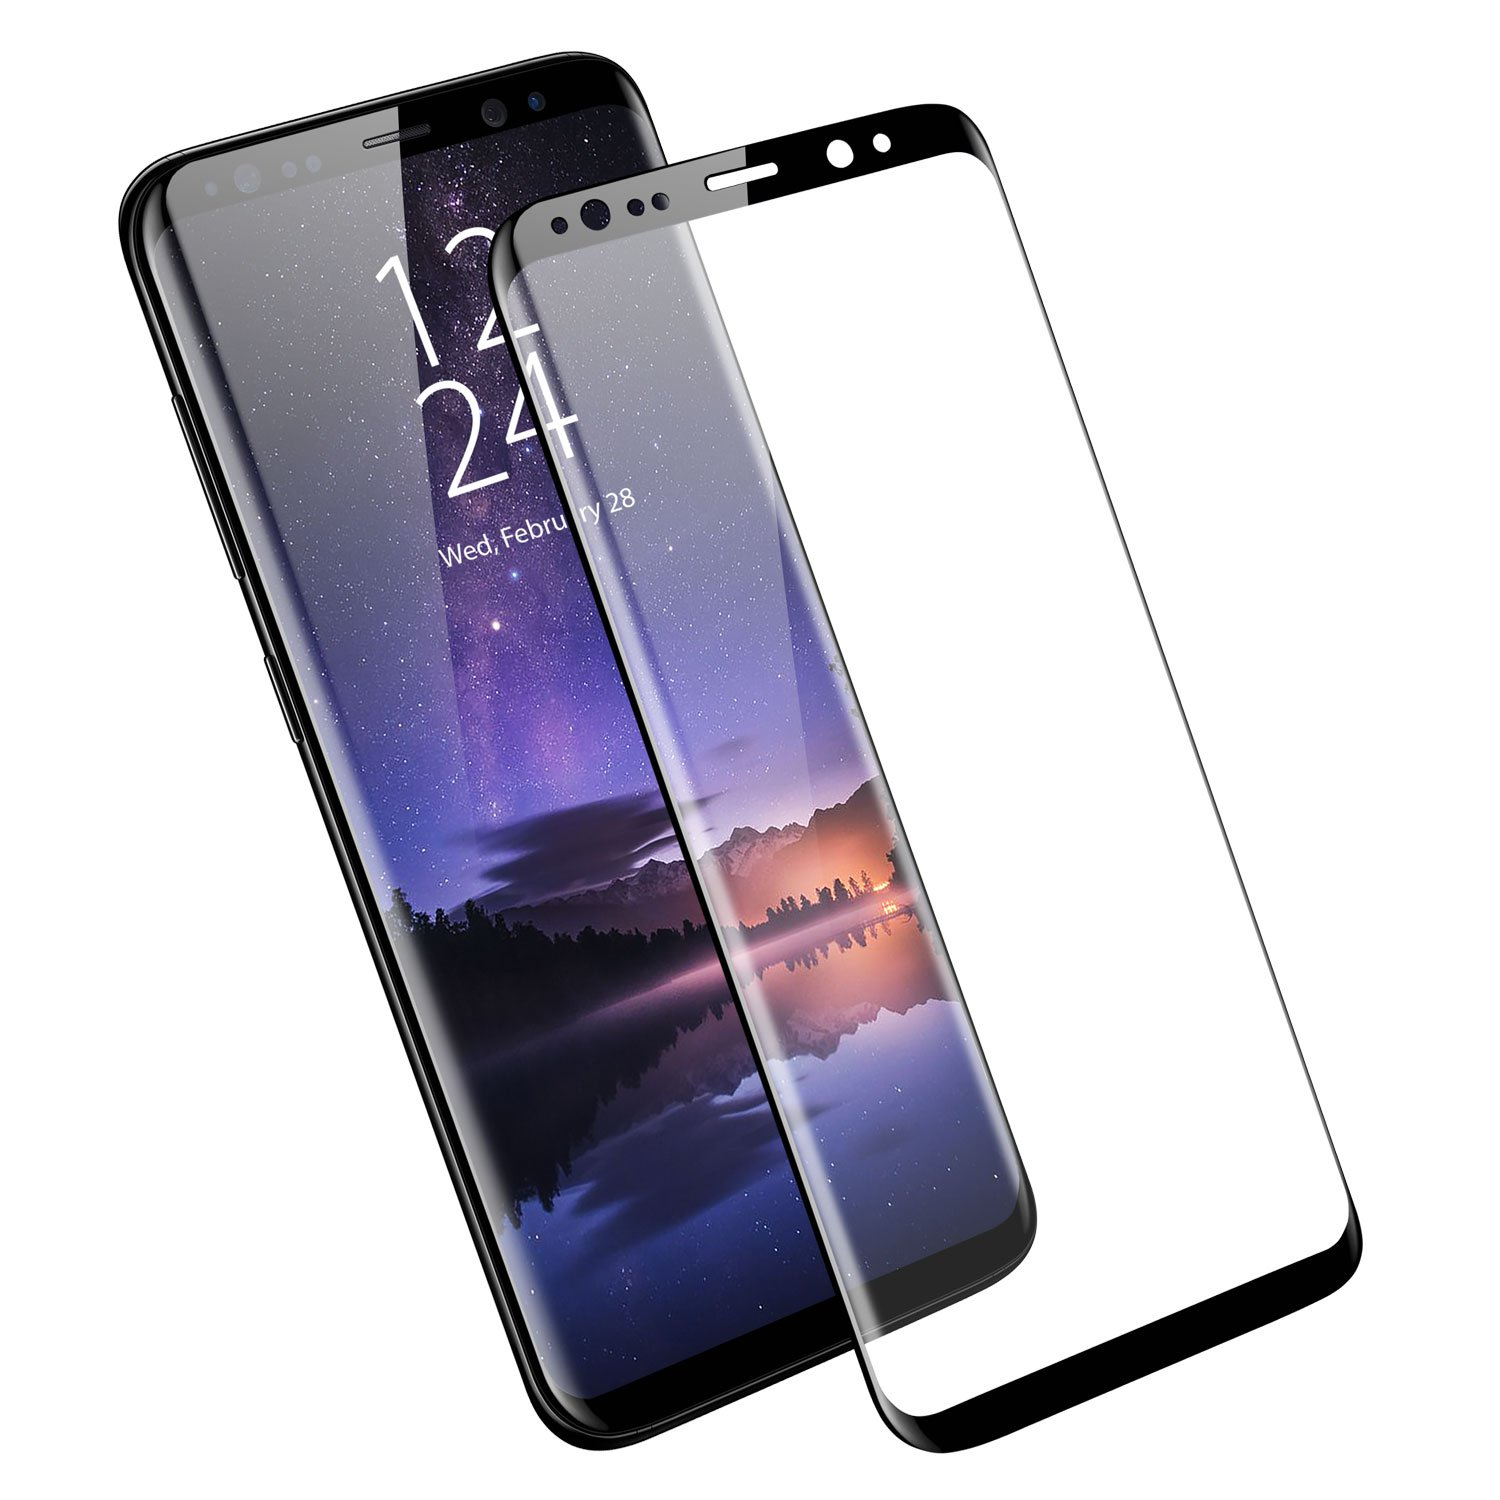 Samsung Galaxy S9 Plus Screen Protector - Full Cover/Edge to Edge - Tempered Glass - Edge Cover - Olixar - Anti Scratch, 9H Hardness, Tough, Bubble Free Anti Fingerprint Protection - Black